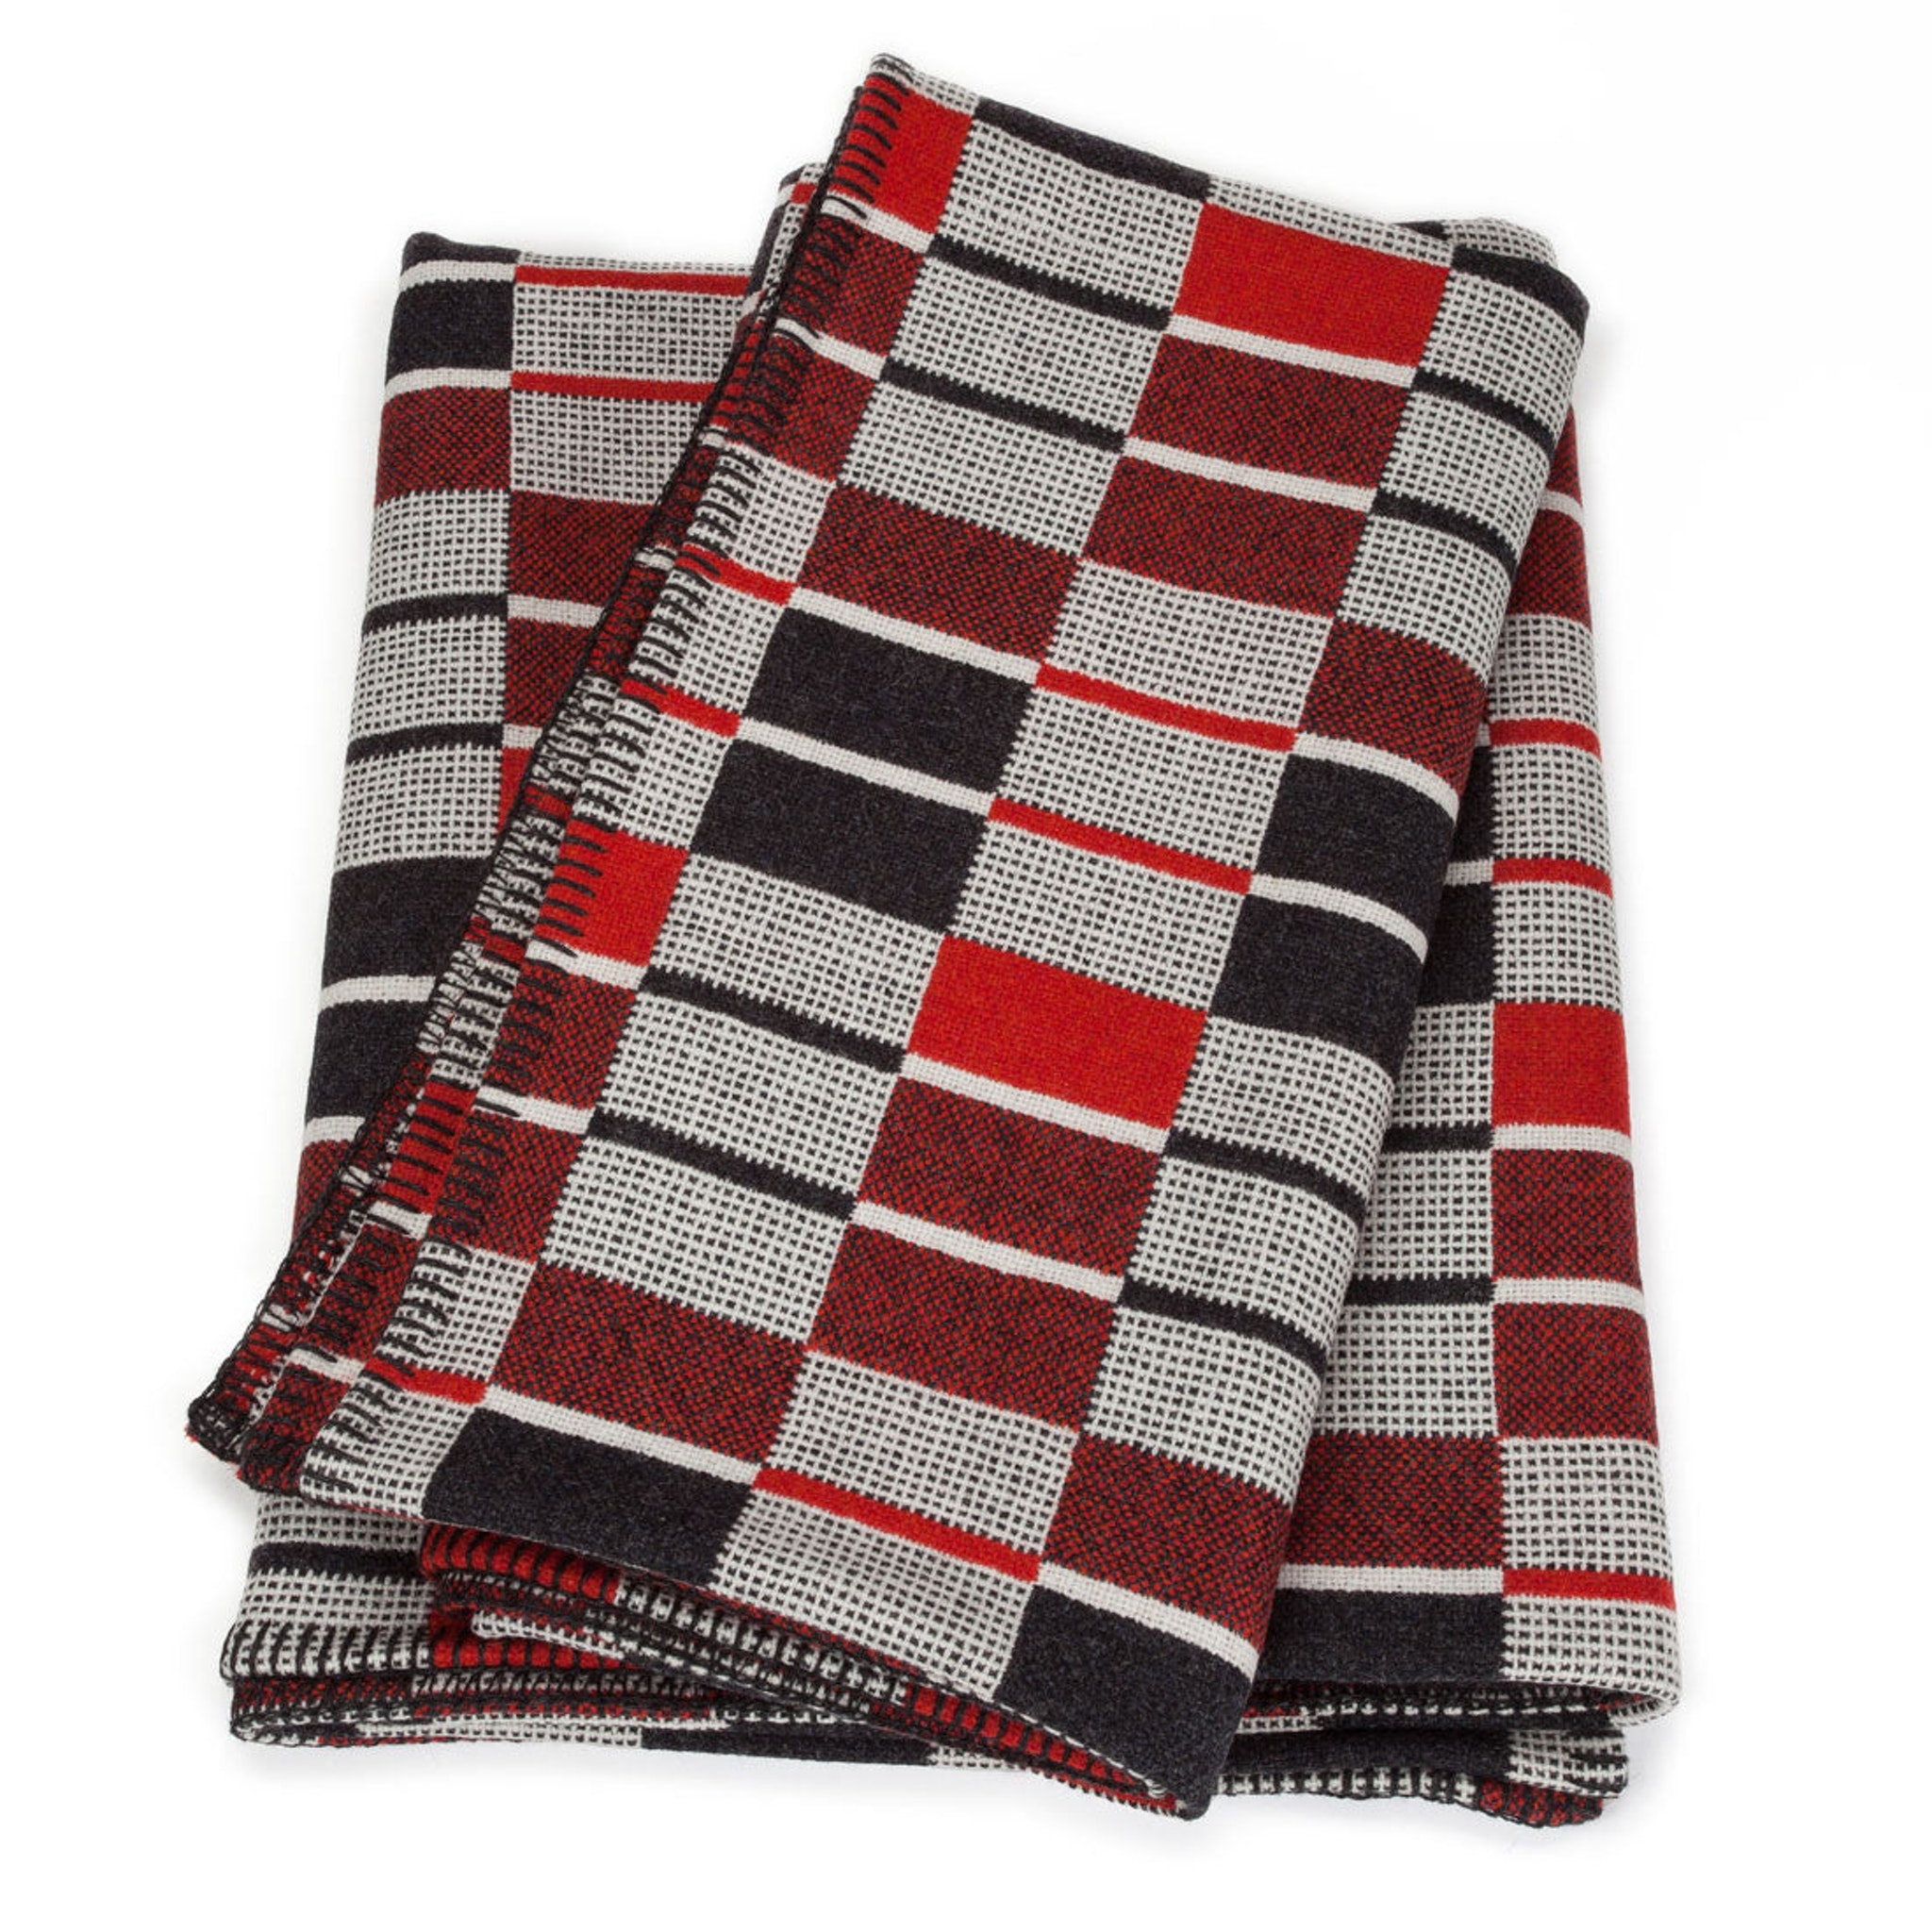 Canasta blanket by Eleanor Pritchard